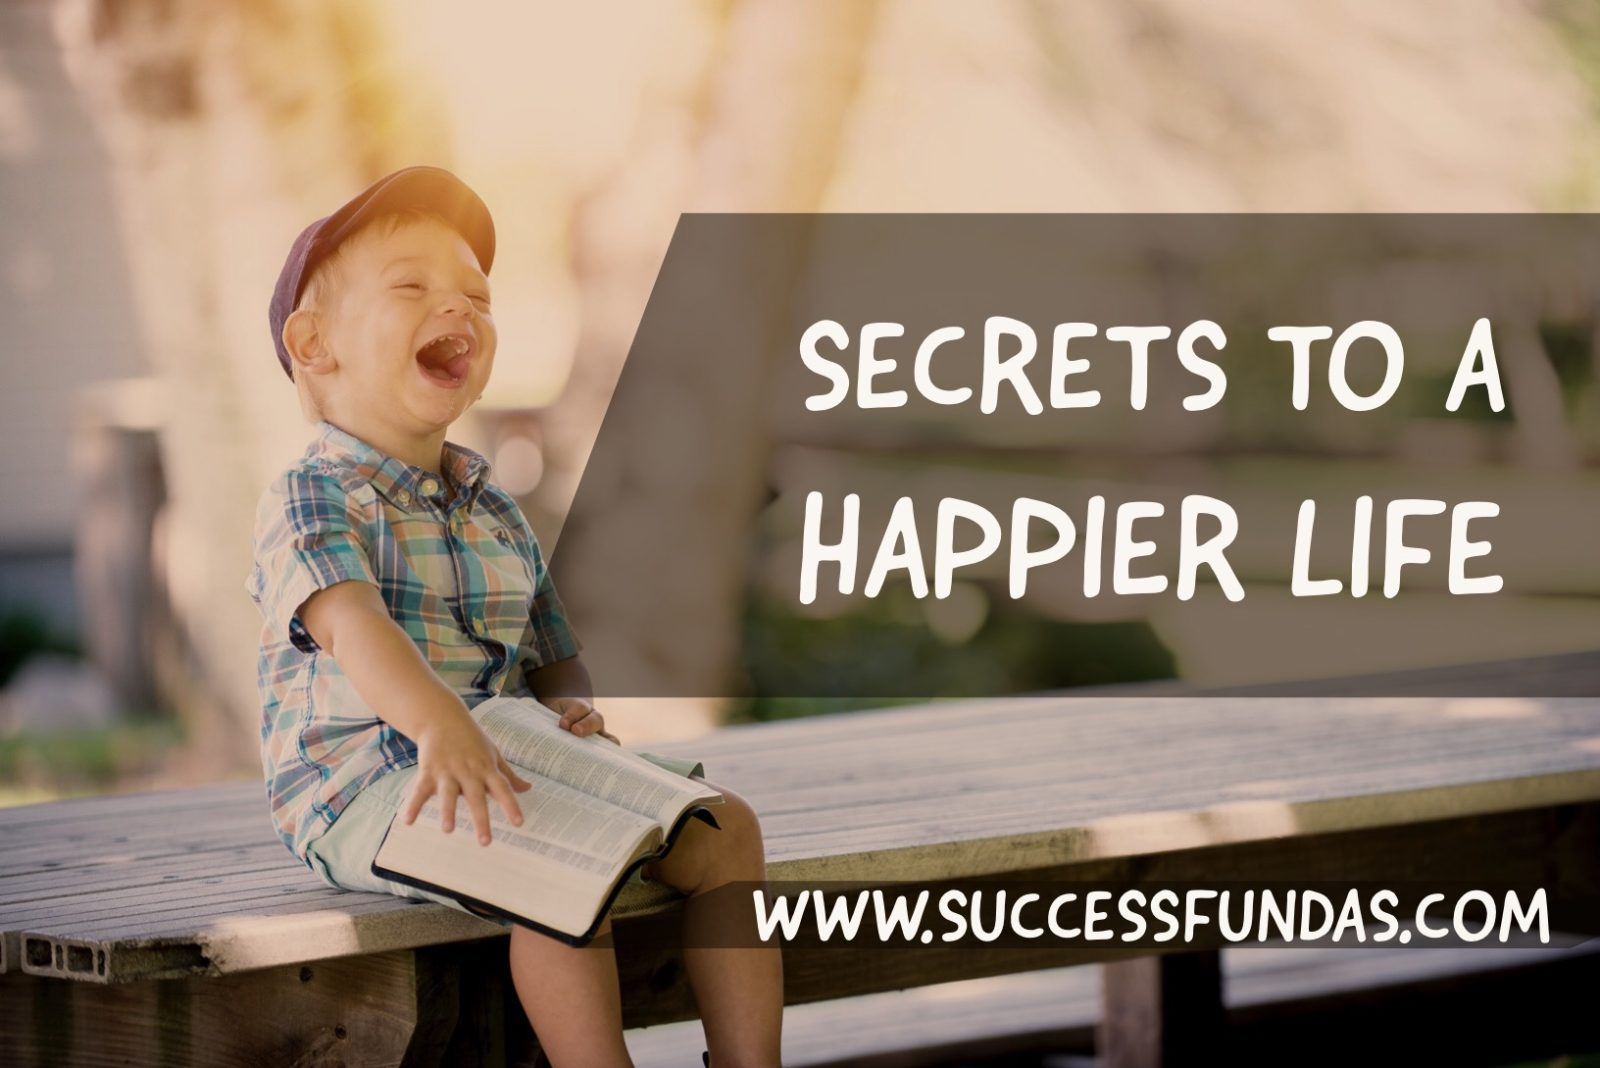 Secrets to a happier life